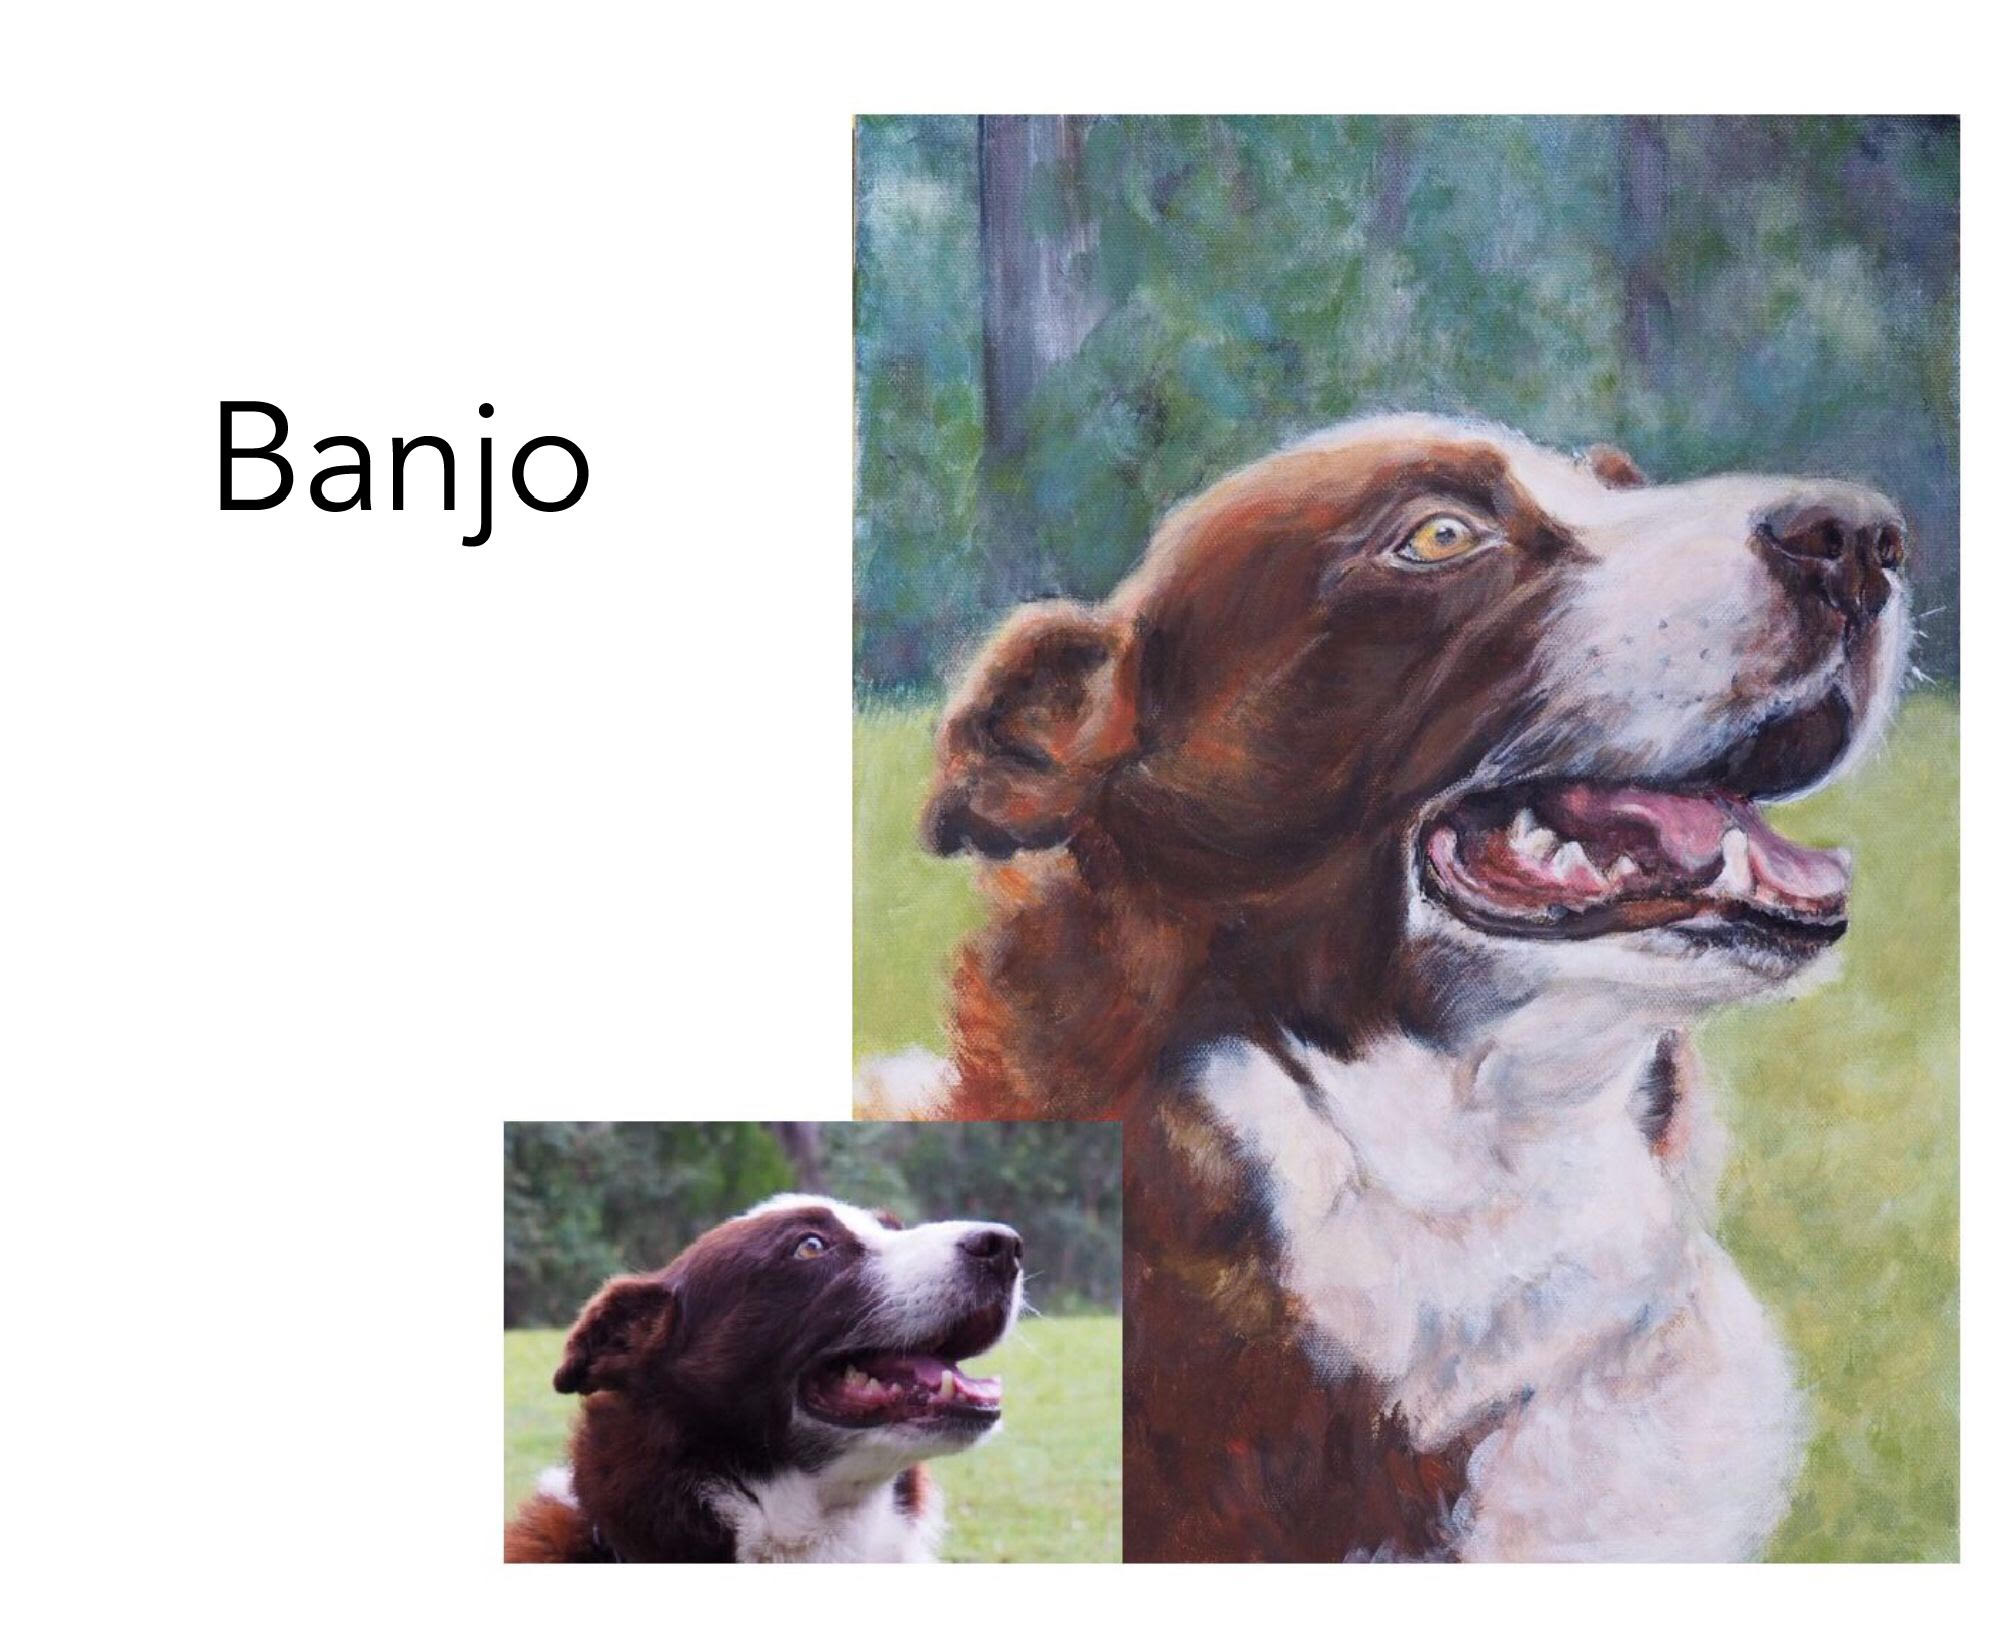 """Kelpie/Koolie mix - Acrylic and oil on Canvas, 12"""" x 16"""" (30.48cm x 40.64cm)Artist's private collectionRepton, NSW—————————————-Banjo is a stick dog. It was difficult to photograph him when we met, as it was a rain day and he just wanted to run play with his stick. He also has a beautiful smile."""